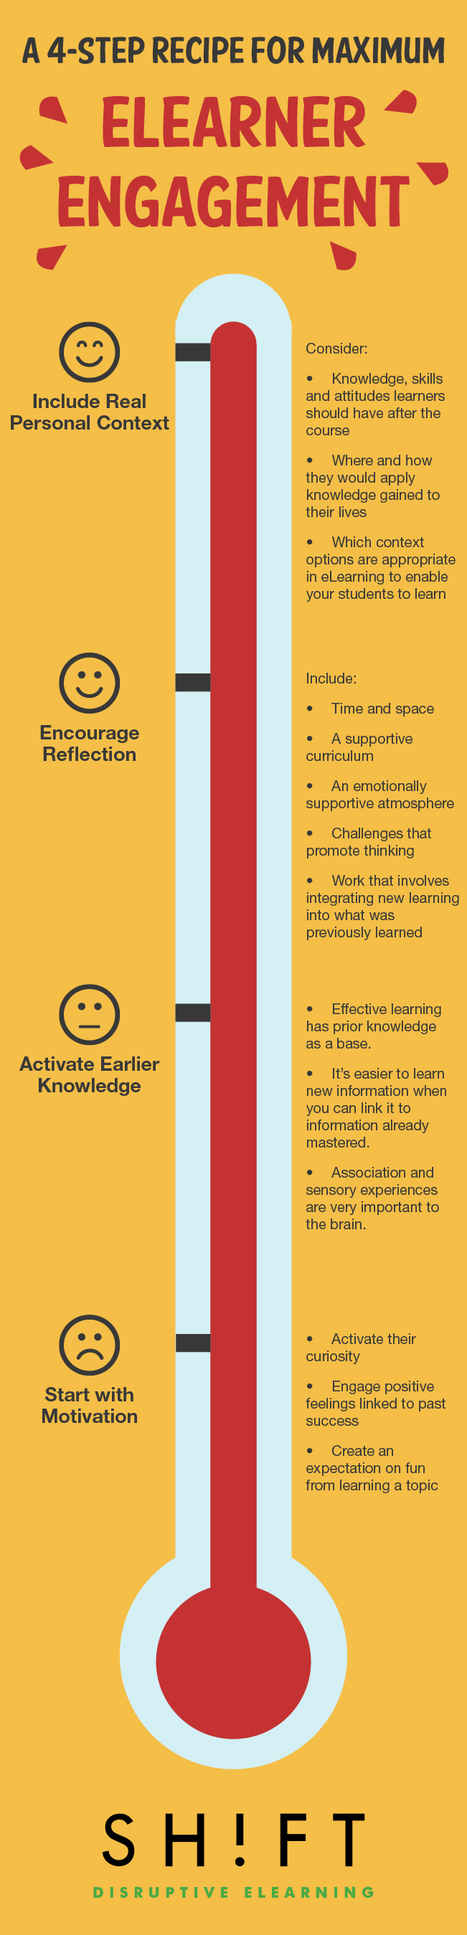 A 4-Step Recipe for Maximum eLearner Engagement | Online Student Engagement in Higher Education | Scoop.it